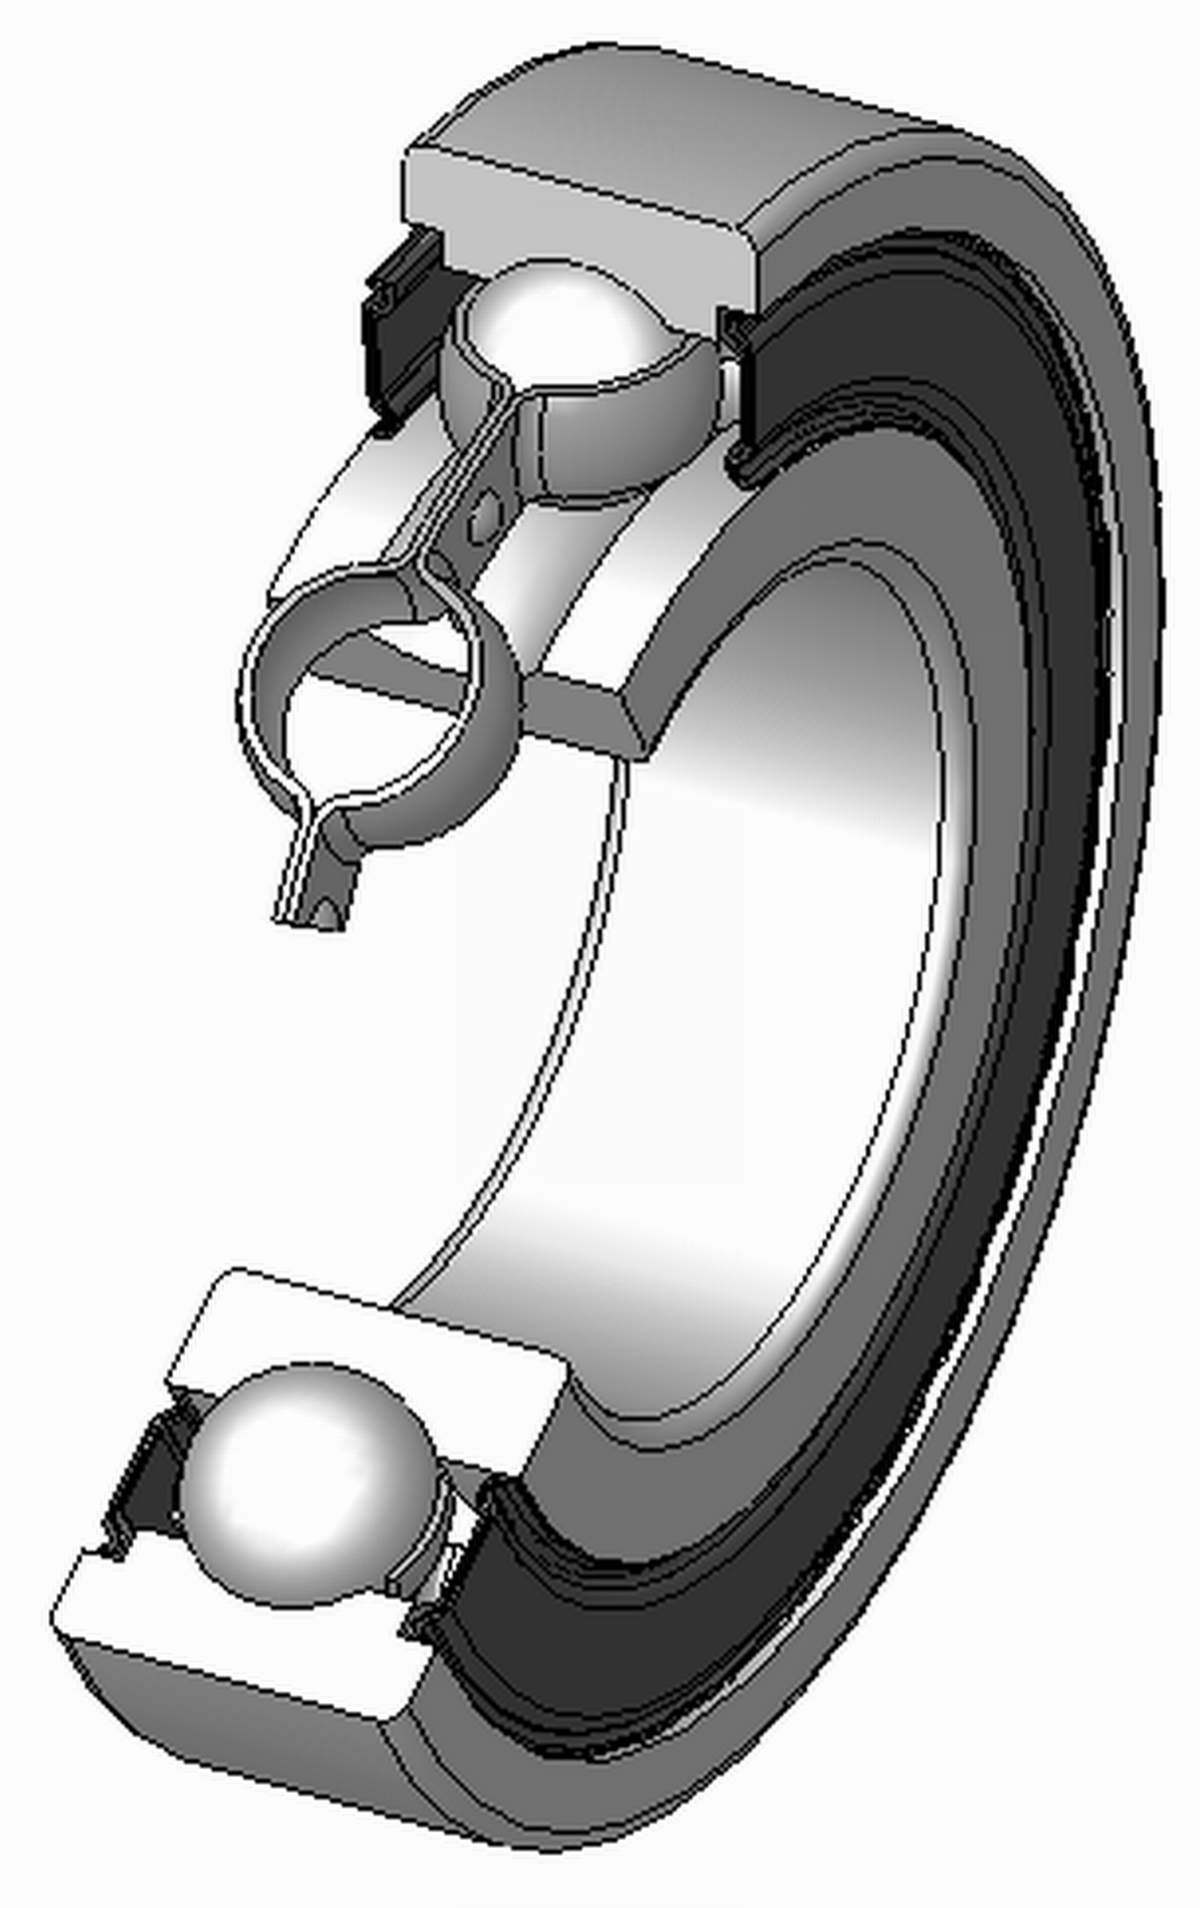 Rolling-element bearing - Wikipedia